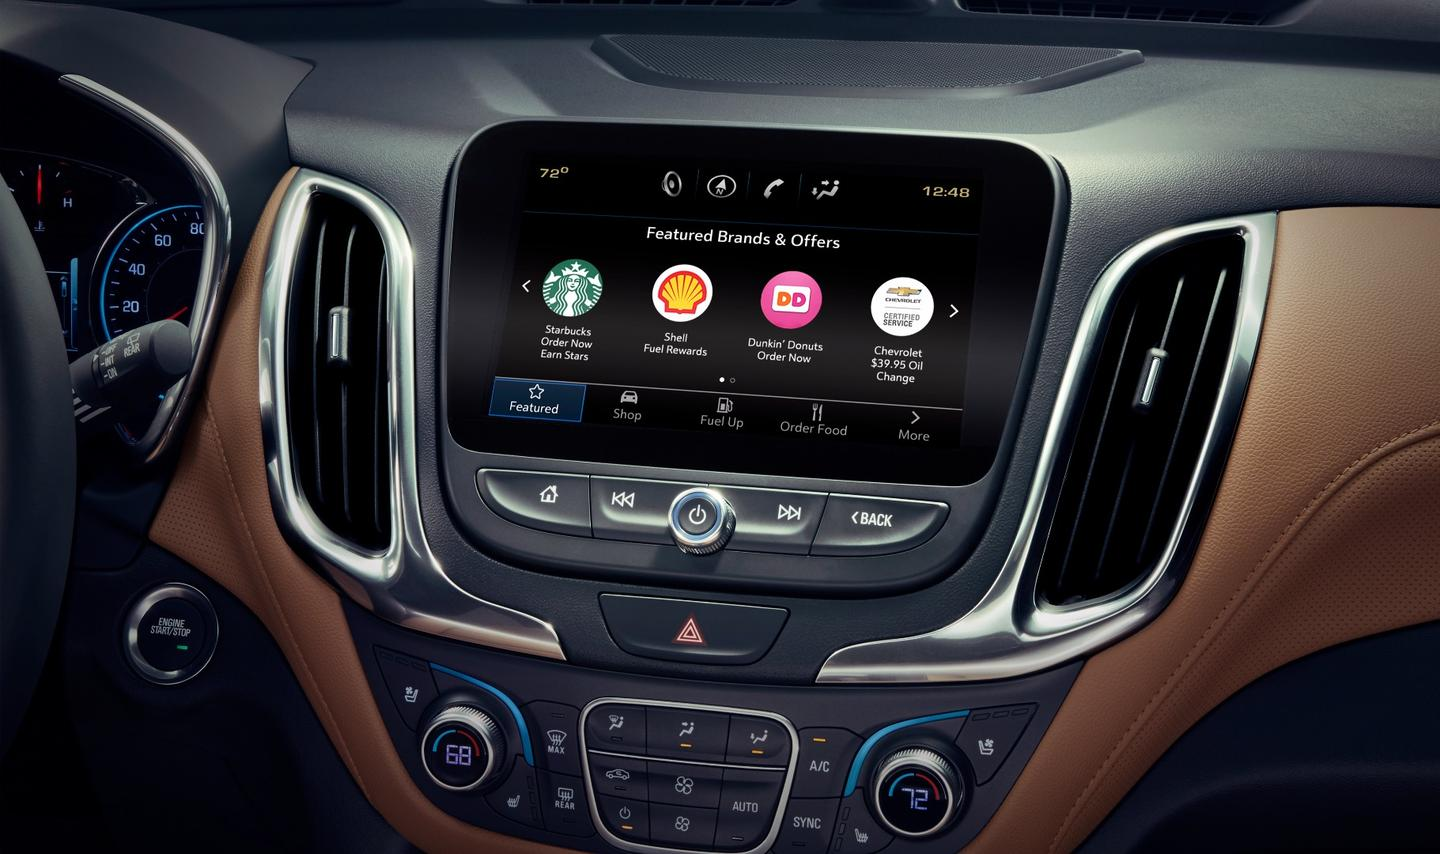 GM's Marketplace in-car e-commerce platform allows drivers to pay for items like coffee and fuel from a vehicle's dash